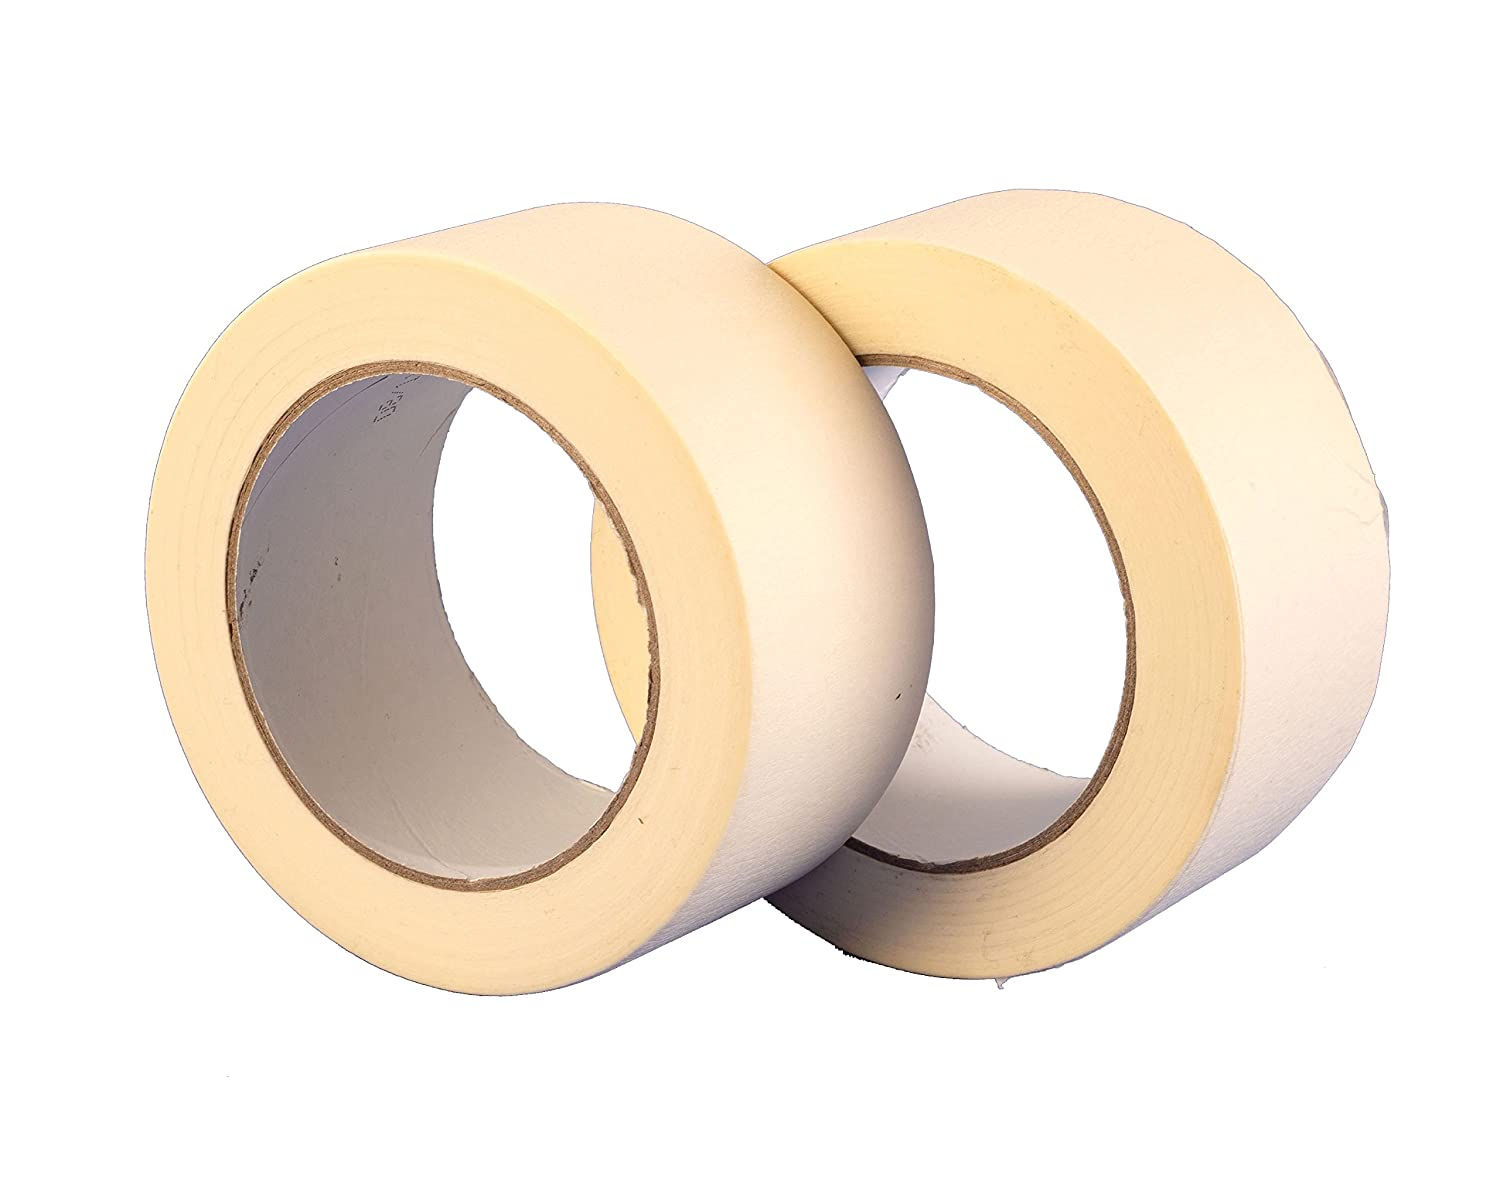 Twin Pack Premium Masking Tape - 50m x 25mm (1') - High Quality Painting & Decorating Strong Adhesive - 2 Rolls by Gocableties